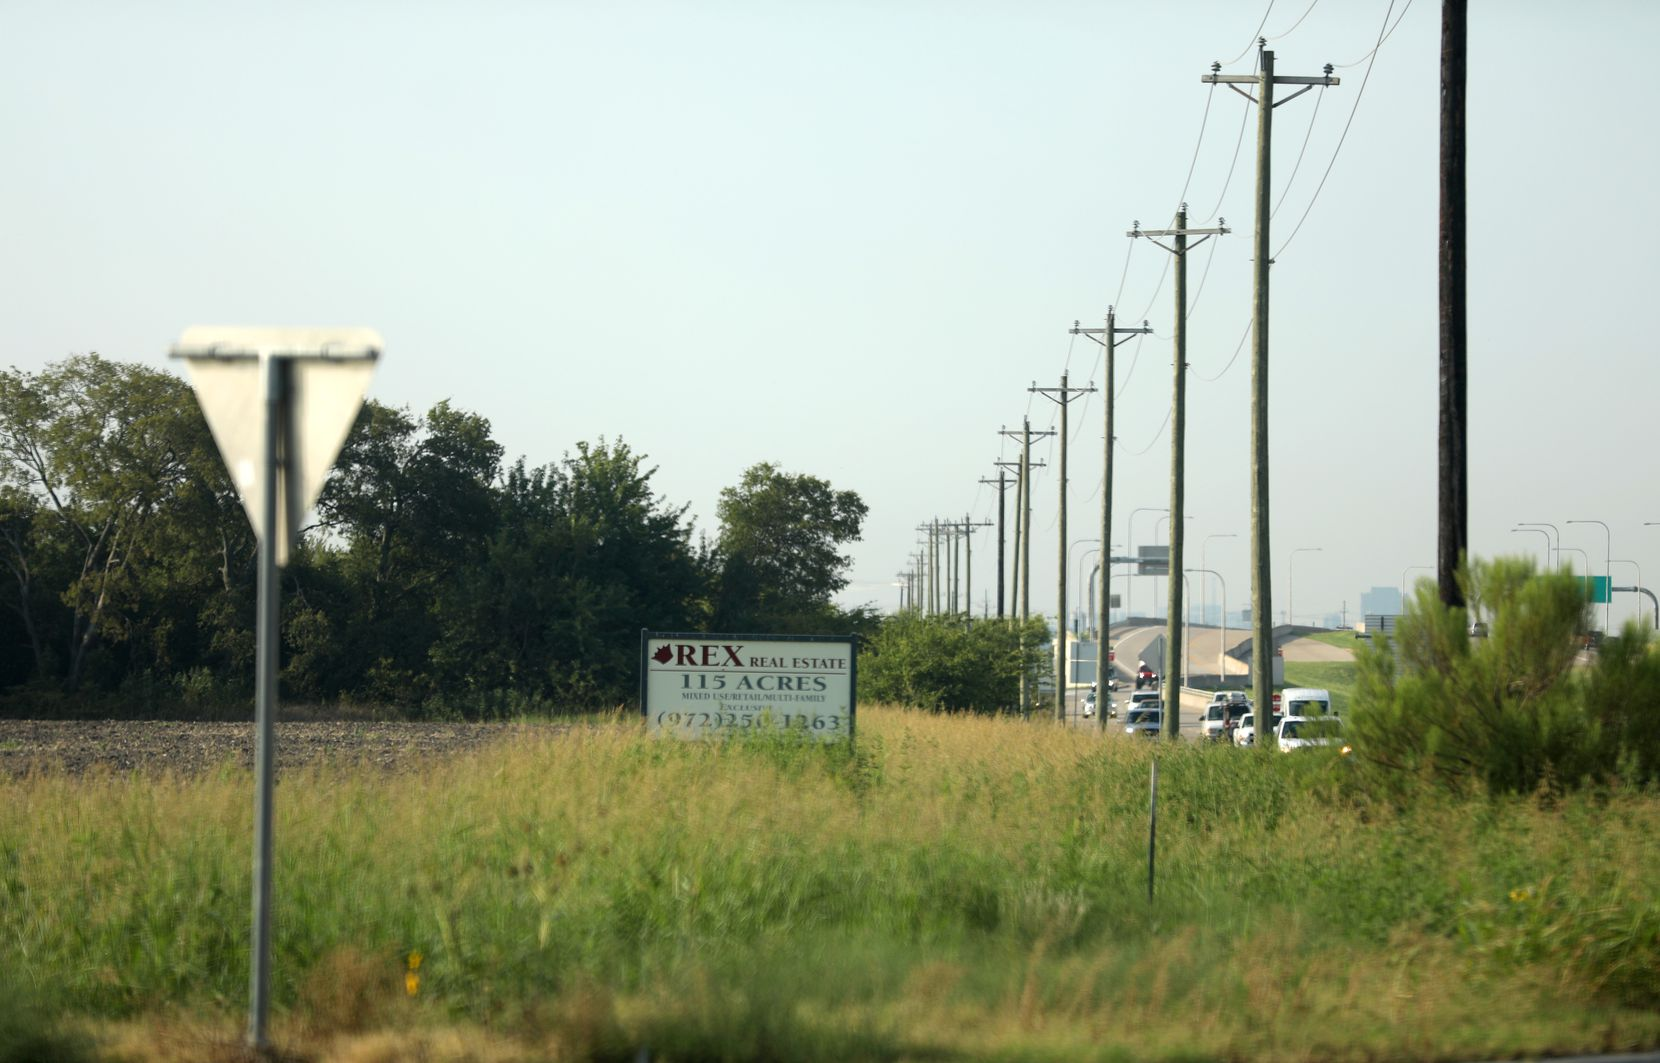 The southeast corner of the intersection of the Dallas North Tollway and Highway 380 in Frisco is still undeveloped.